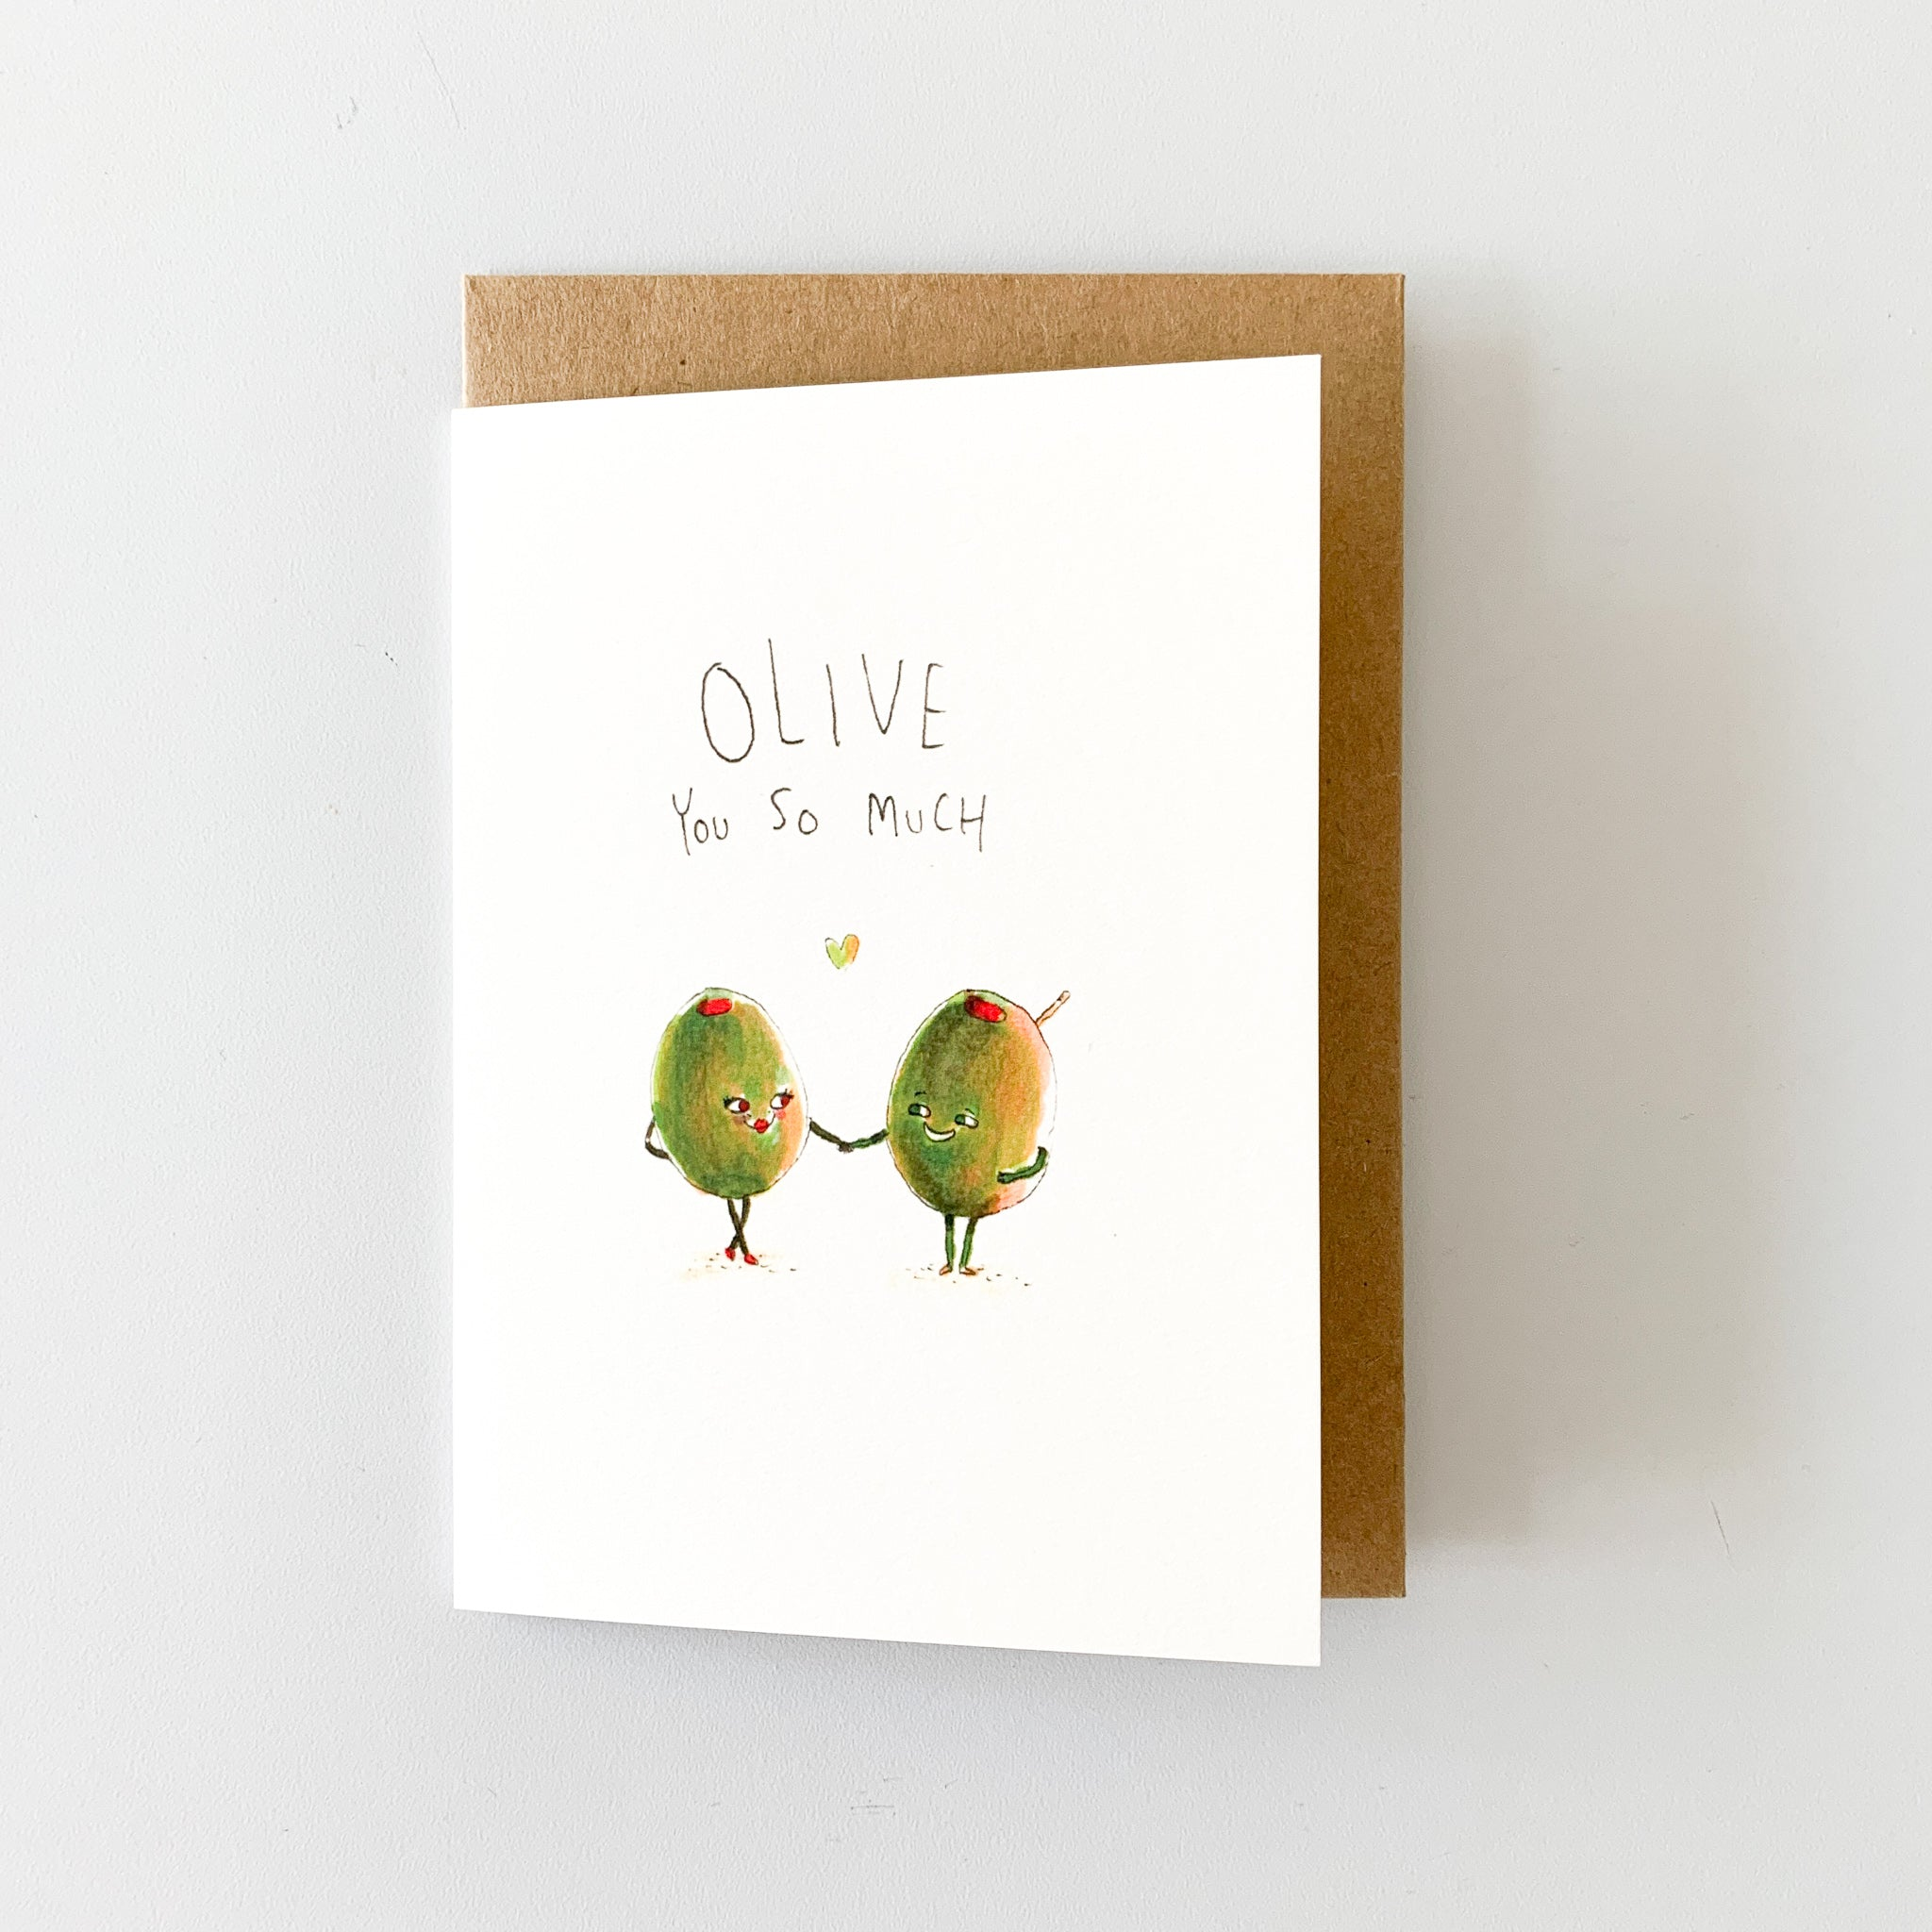 Olive You So Much - Well Drawn